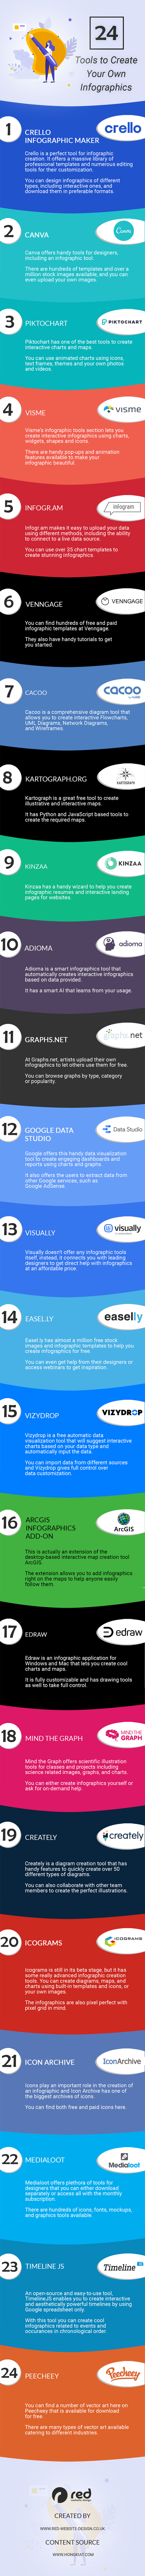 Infographic lists tools to help build infographics